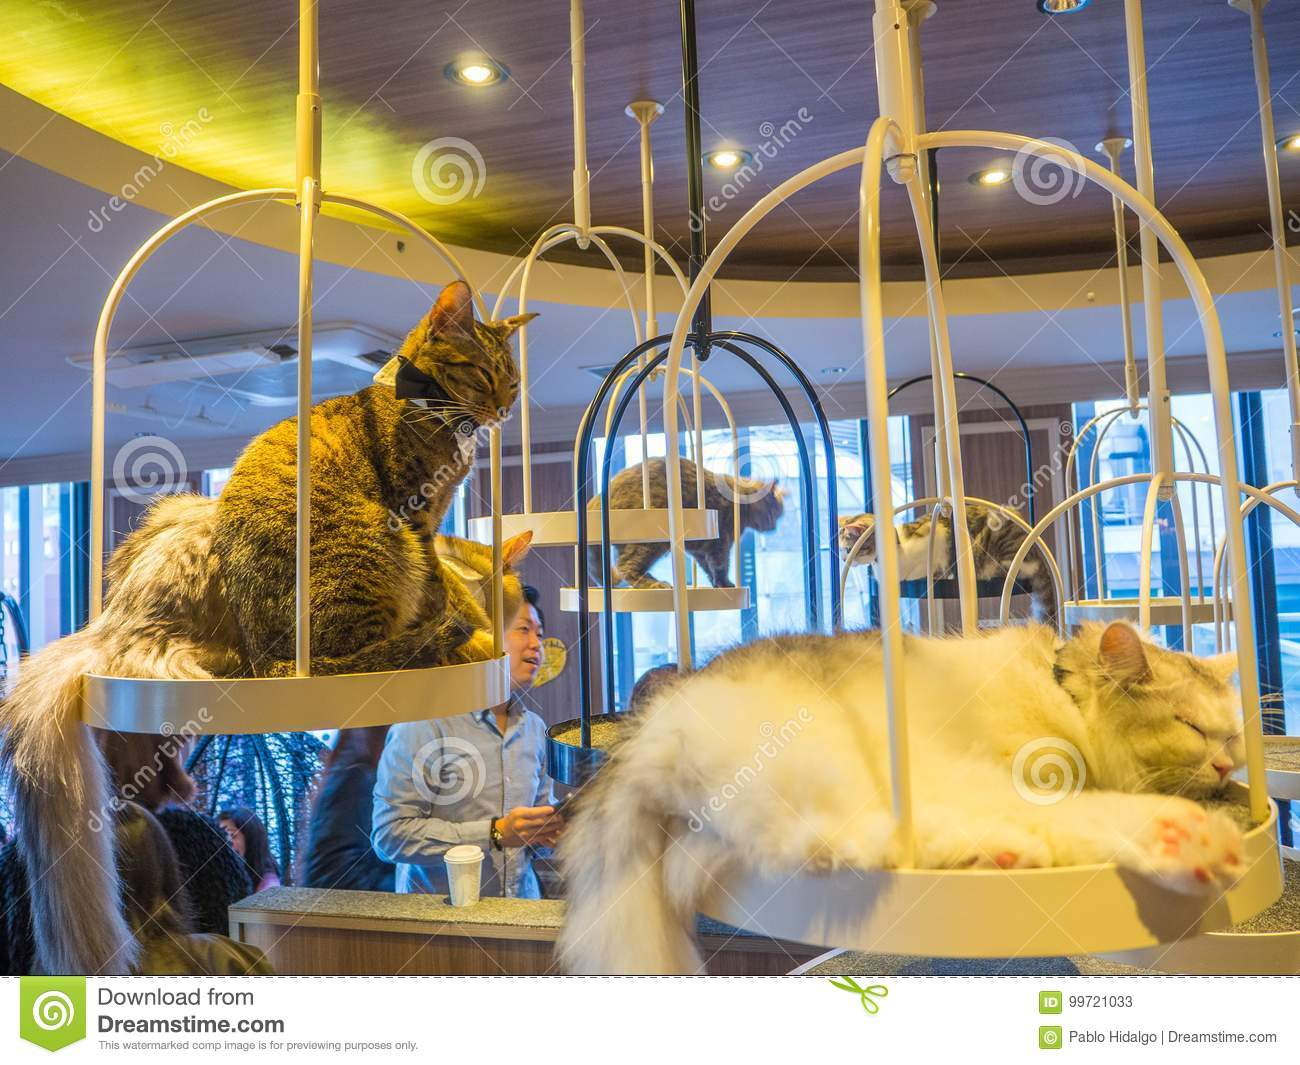 TOKYO, JAPAN - JULY 17, 2017: Unidentified people taking pictures of the little cats, purebred kittens for sale in a pet